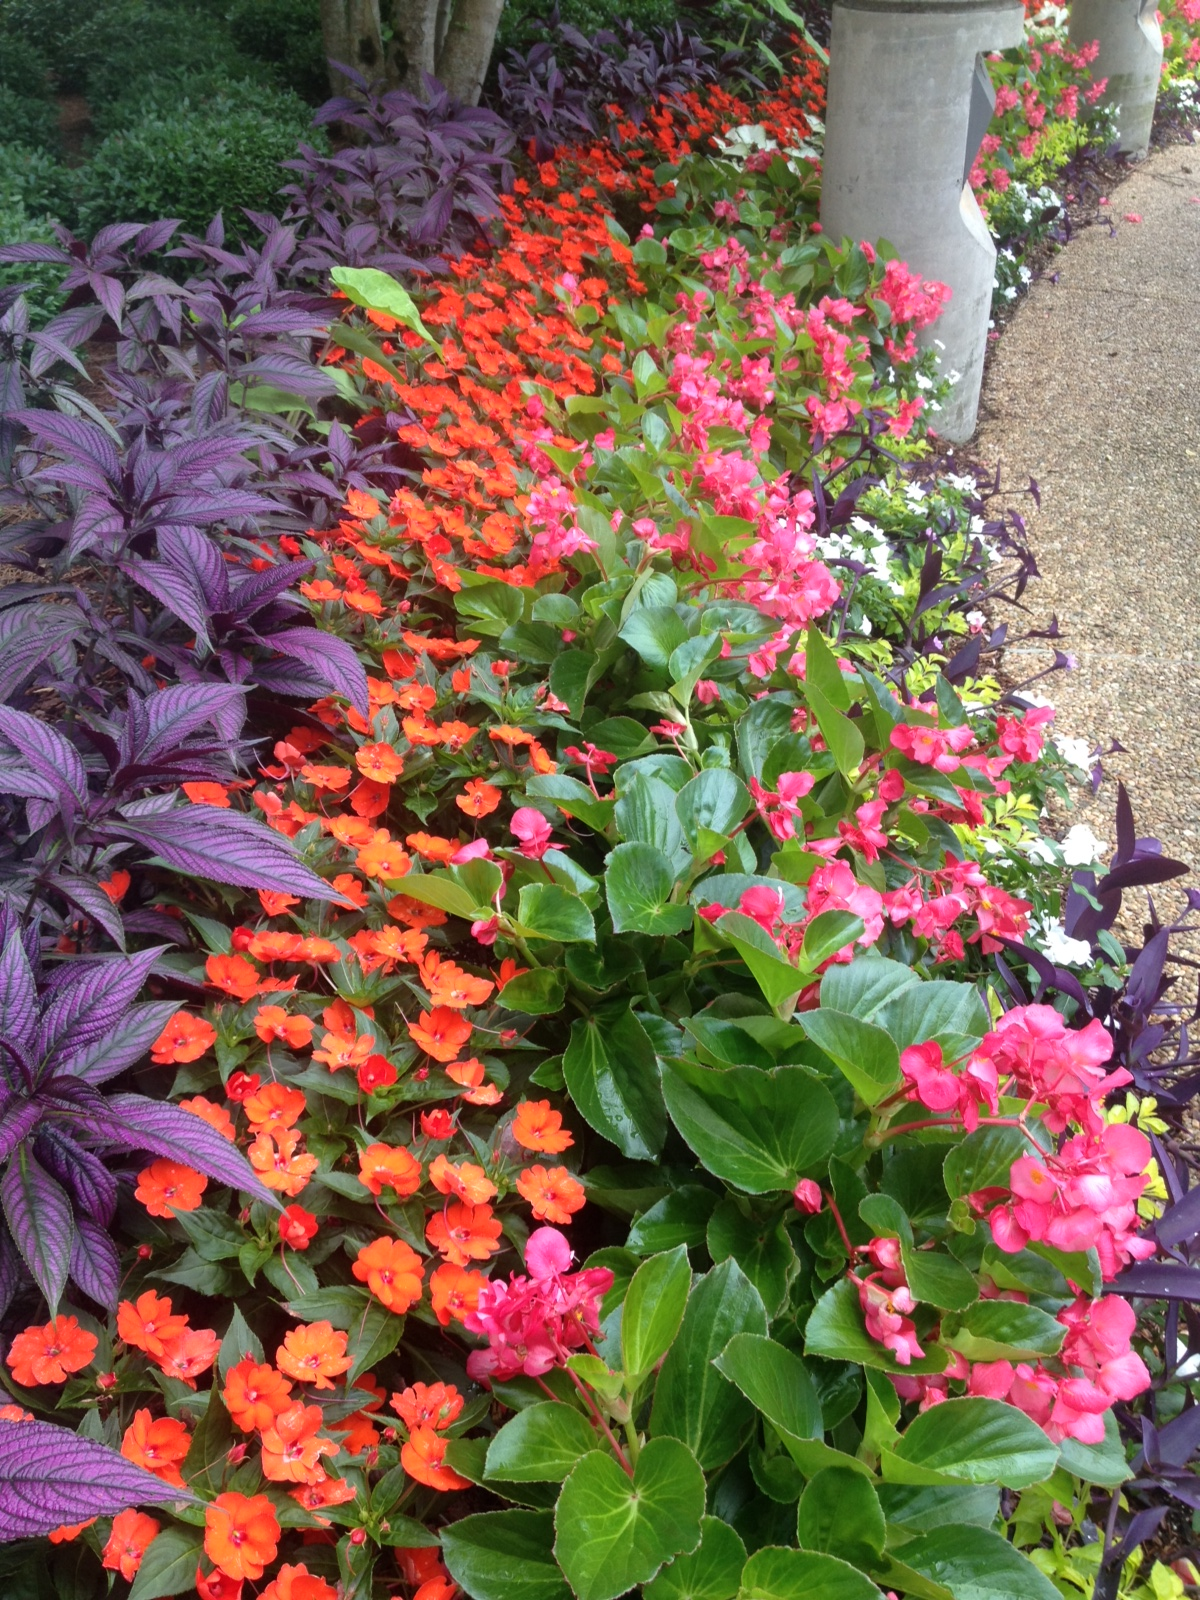 Summer watering part ii blackjack horticulture when this annual does not get enough water it begins to wilt like the vinca for the opposite reason insufficient amounts of water can also stunt the izmirmasajfo Gallery